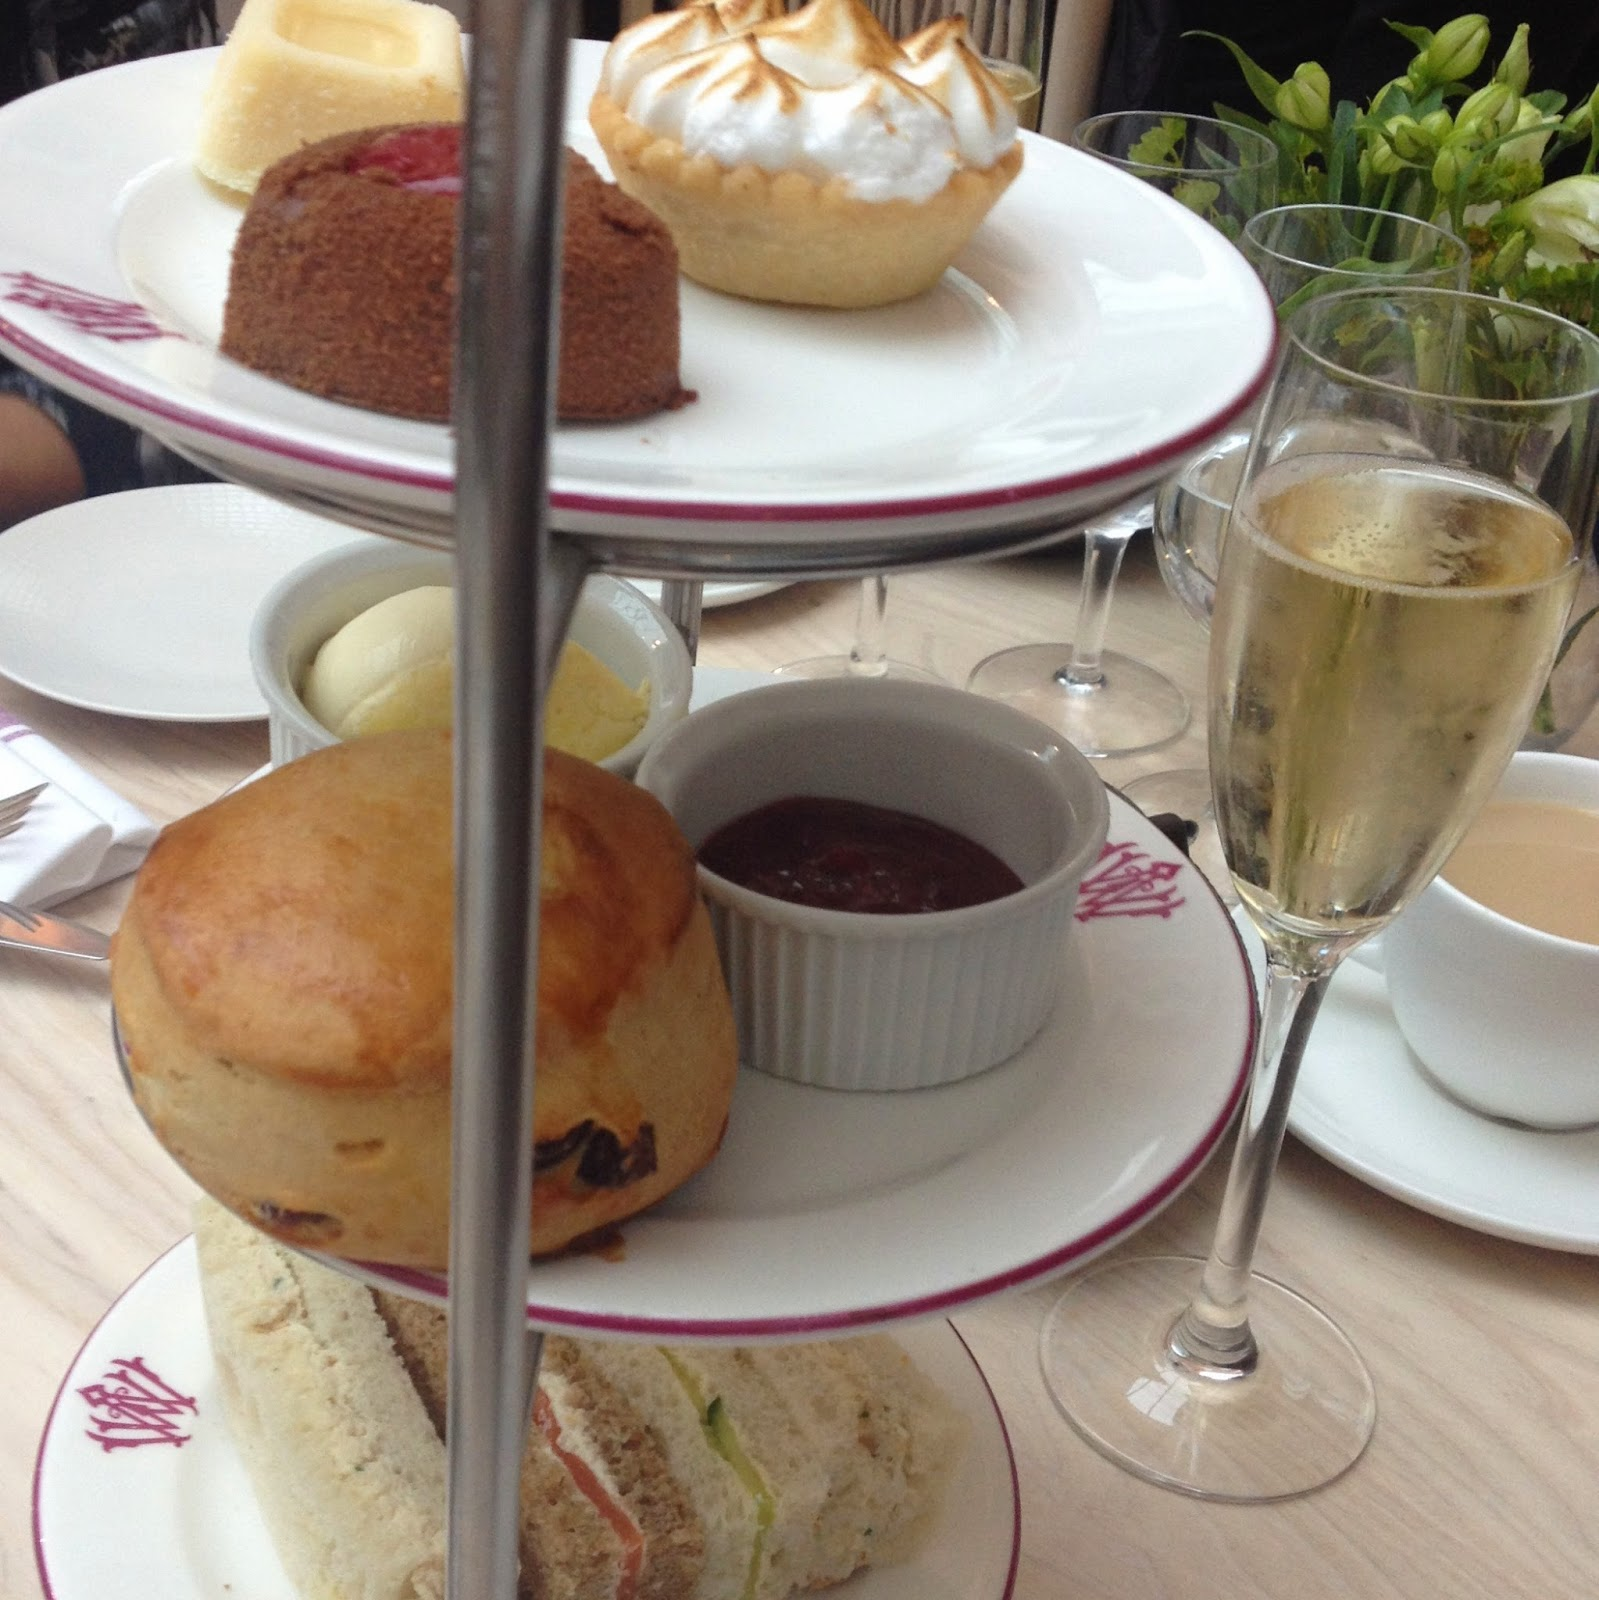 The Wallce Collection afternoon tea